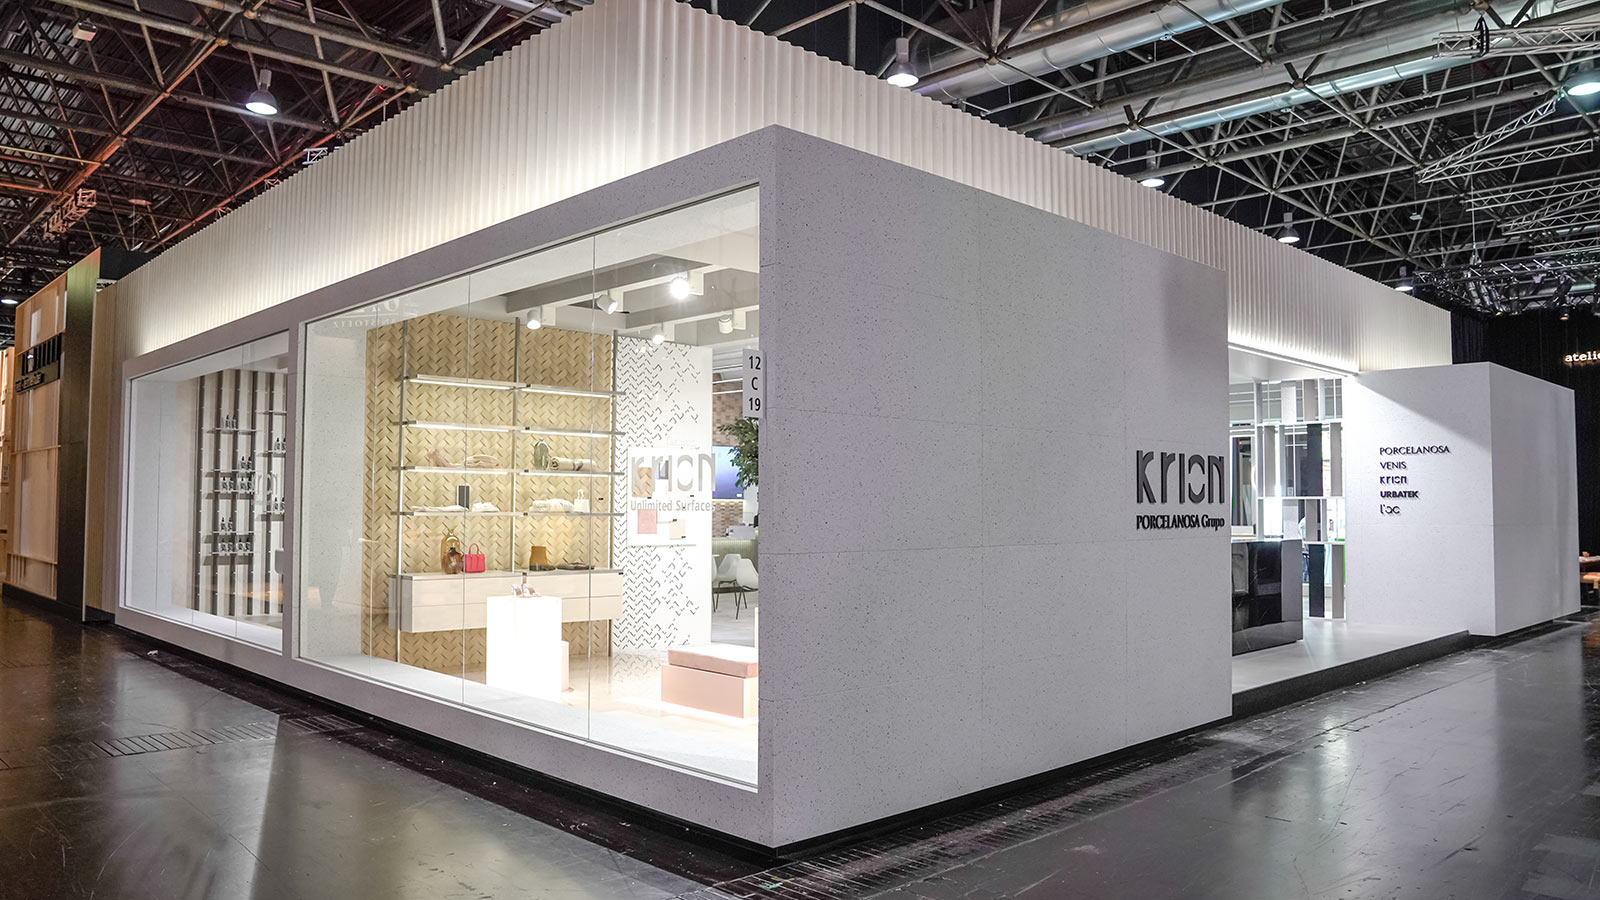 Sustainability gains traction at Euroshop 2020 with collections from PORCELANOSA Group